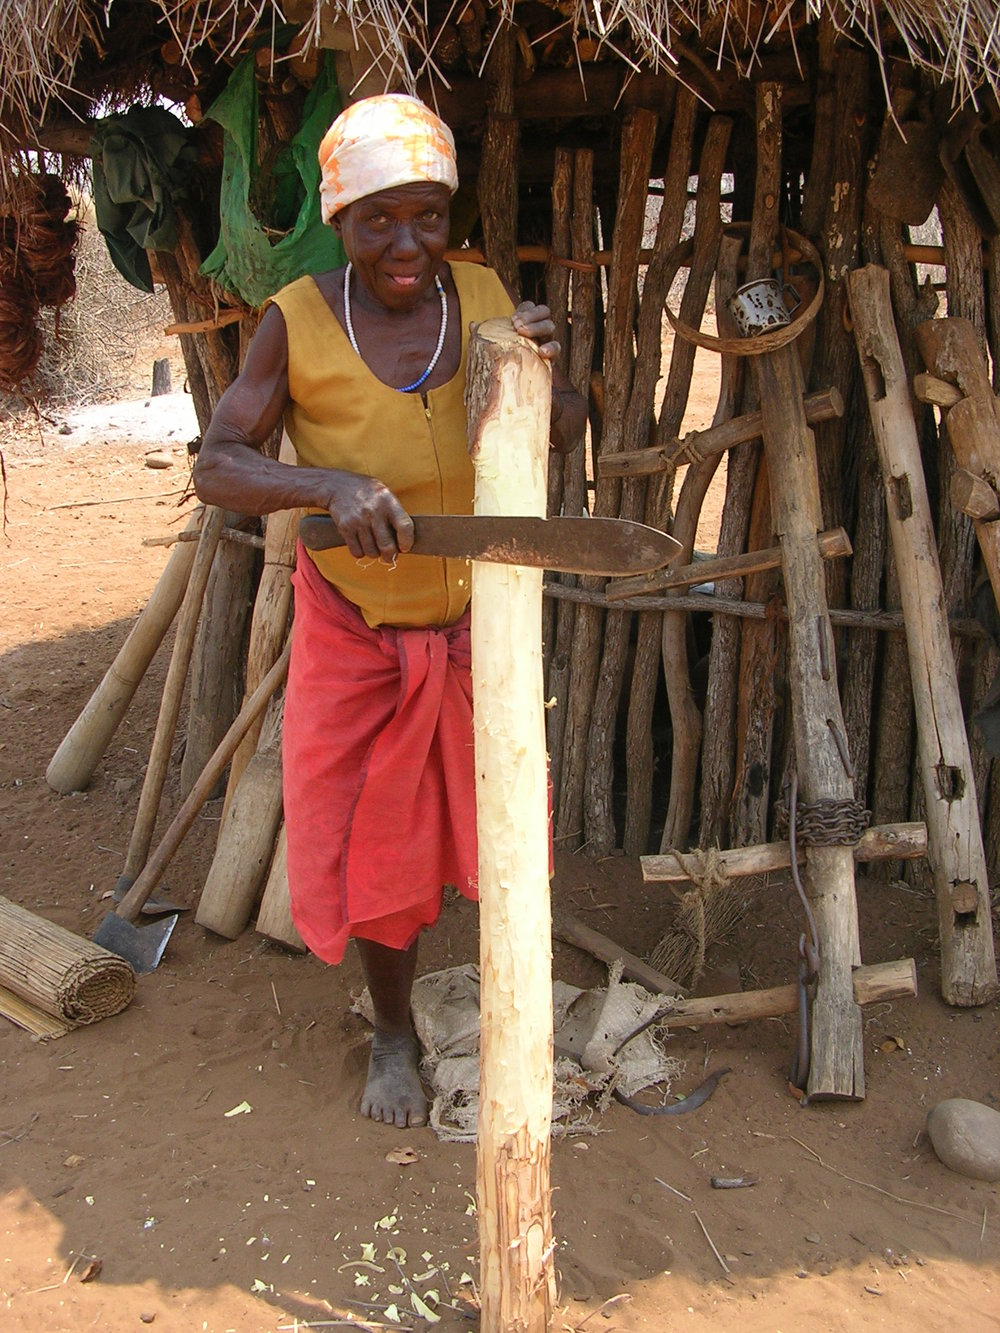 Meselina is preparing the tools she needs for food preparation to bring them to the new location. She is afraid that she will not find the wood that she needs there to make them. (2008)